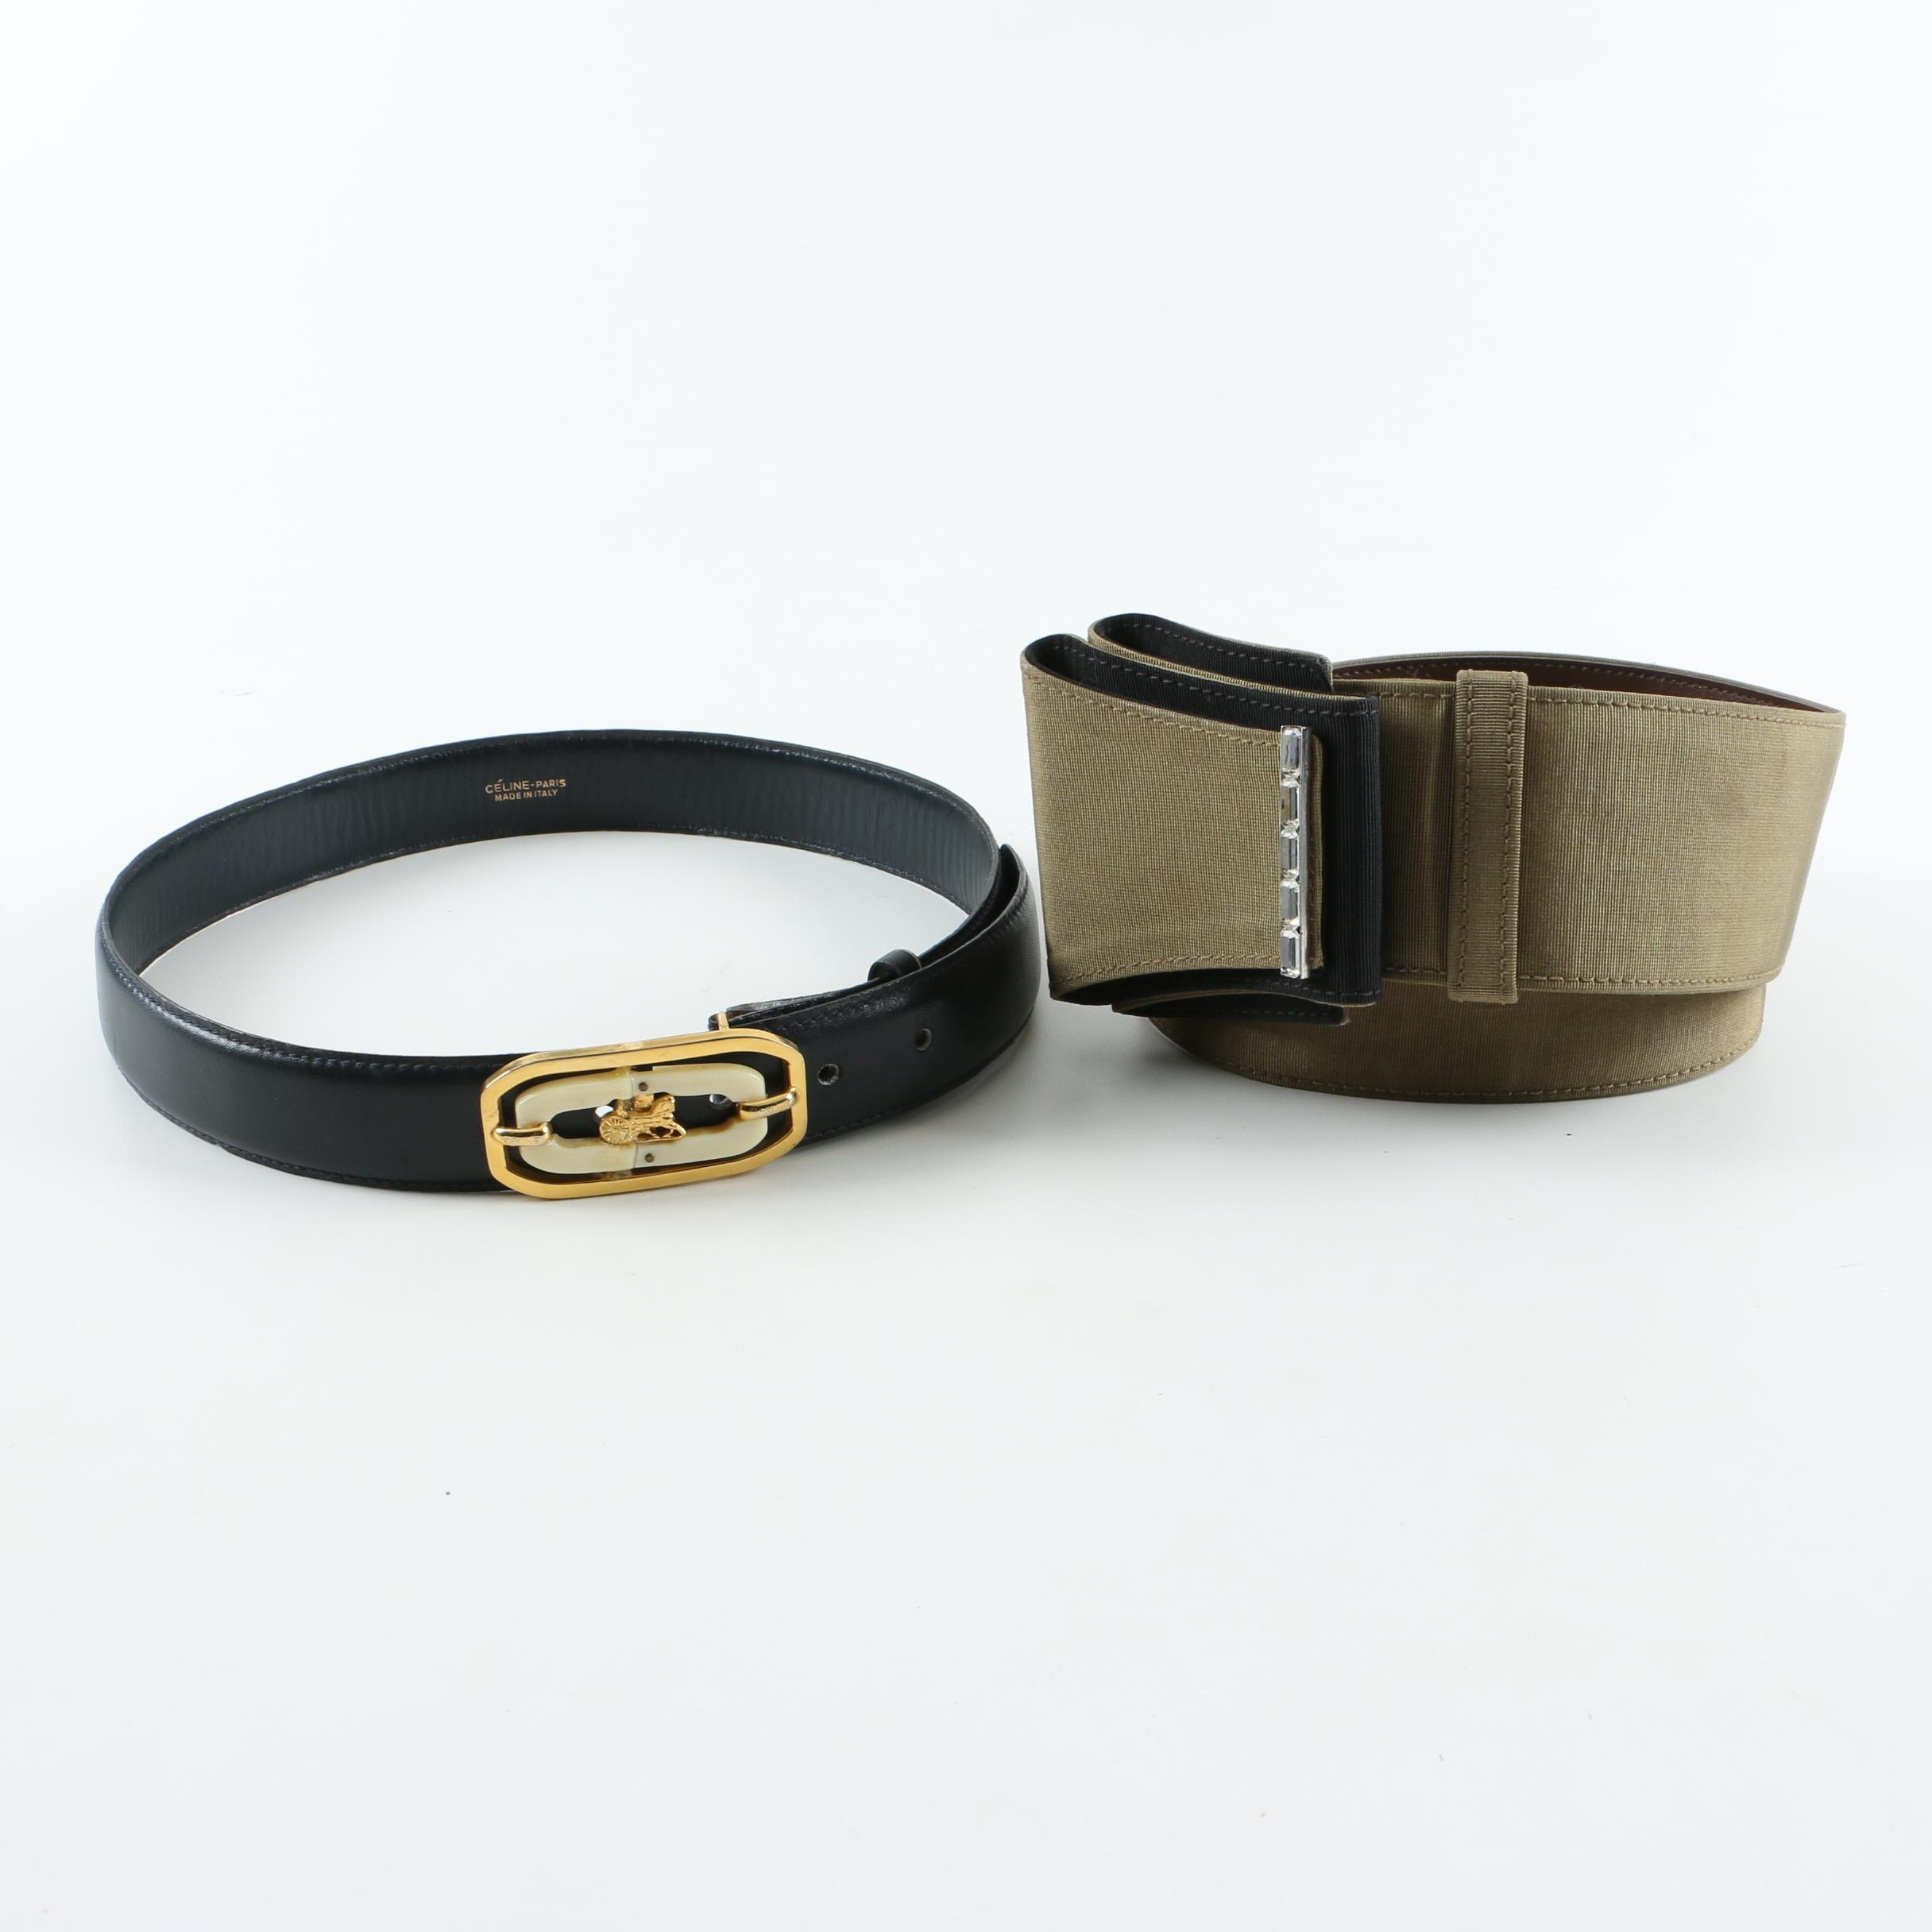 Celine and Gianni Versace Belts